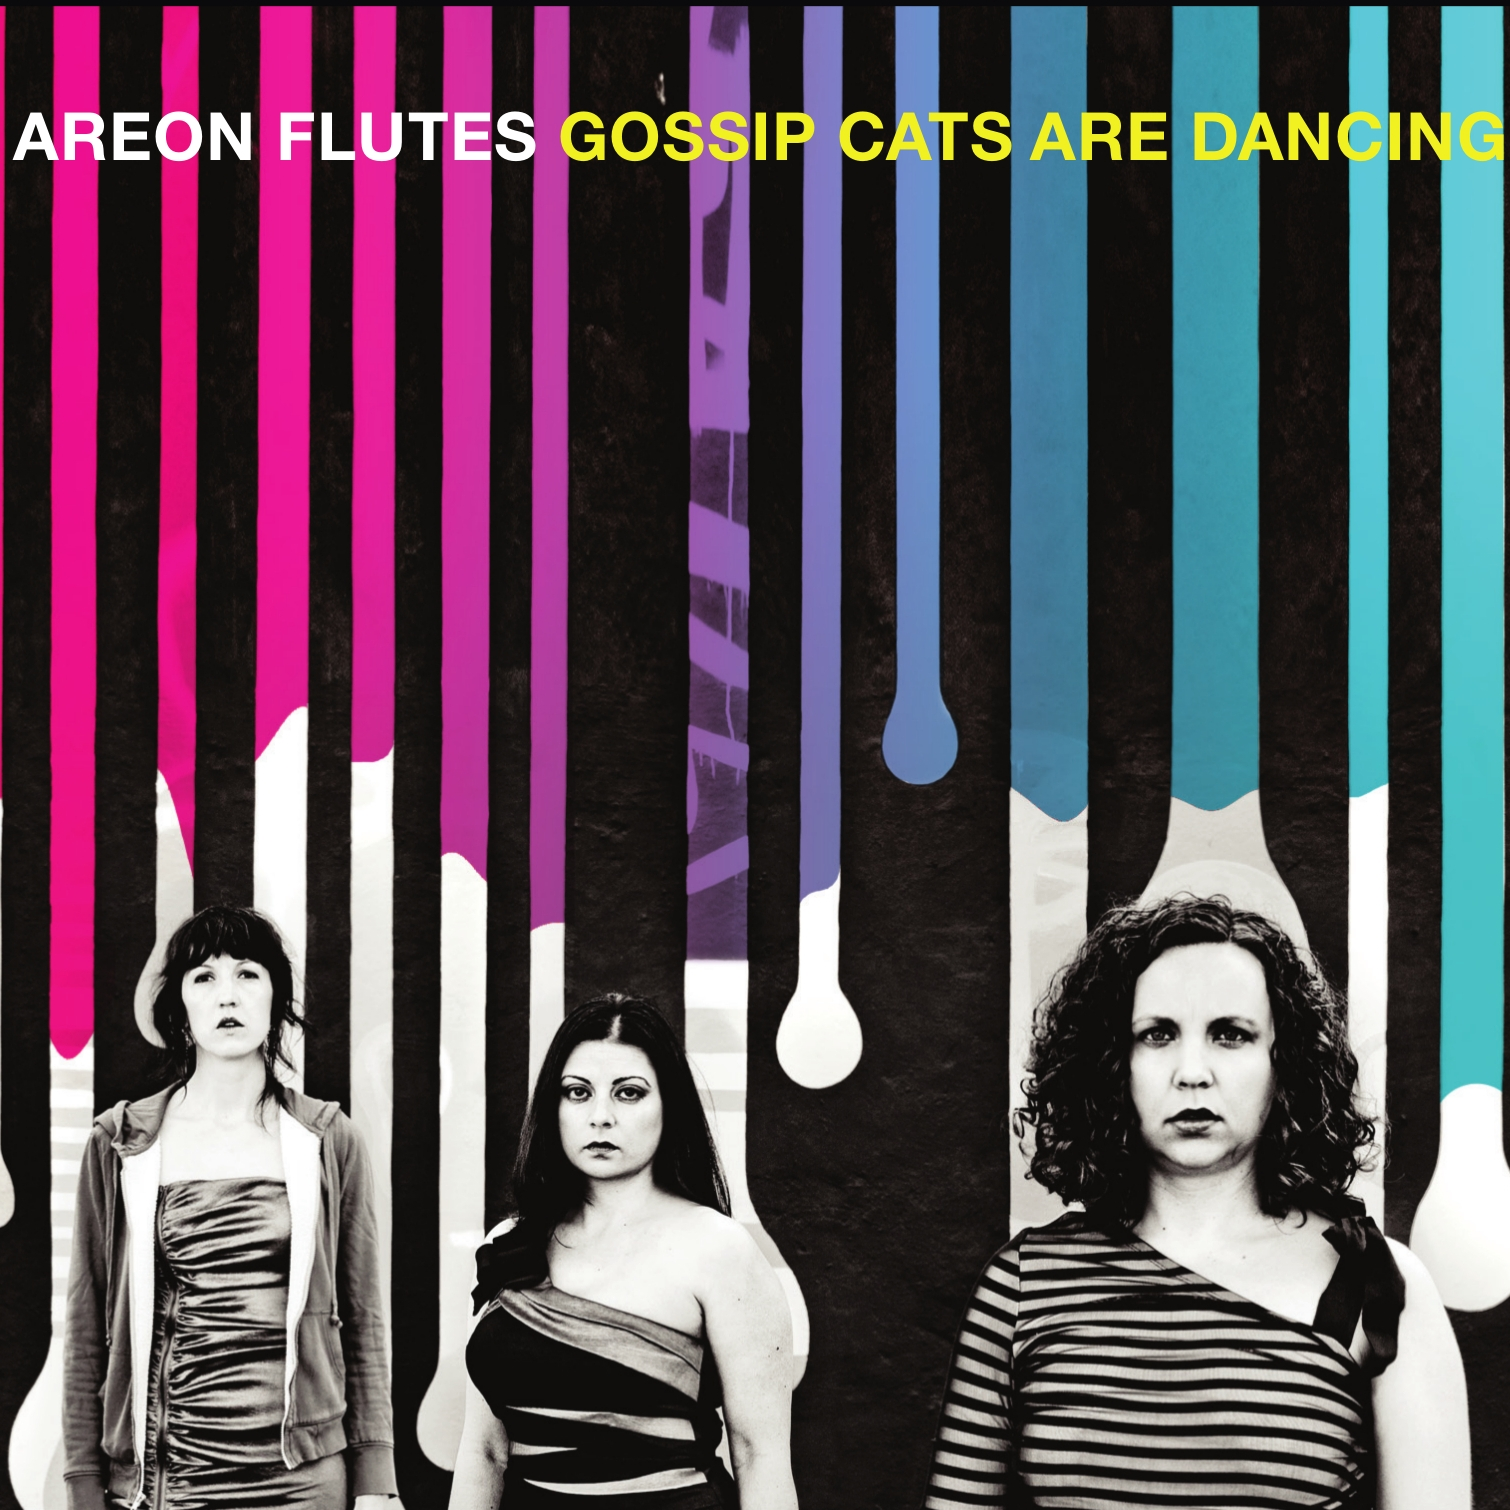 "Areon Flutes releases "" Gossip Cats are Dancing "" featuring works by Robert DIck, Chia-Ying Chiang, and Mike Sempert"